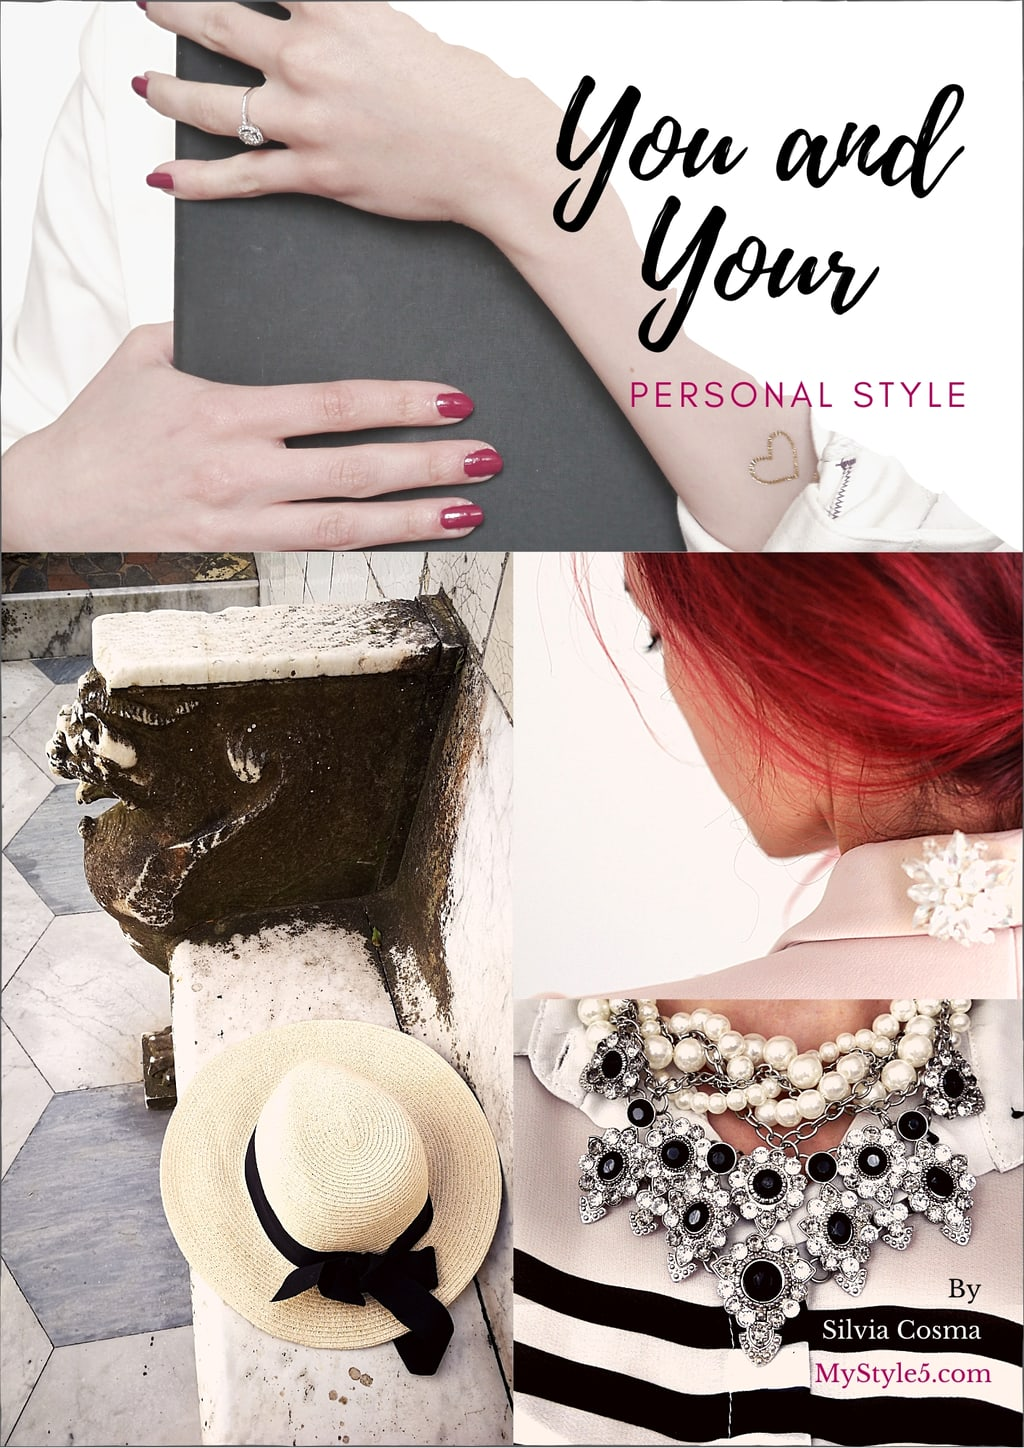 You and Your Personal Style Cover